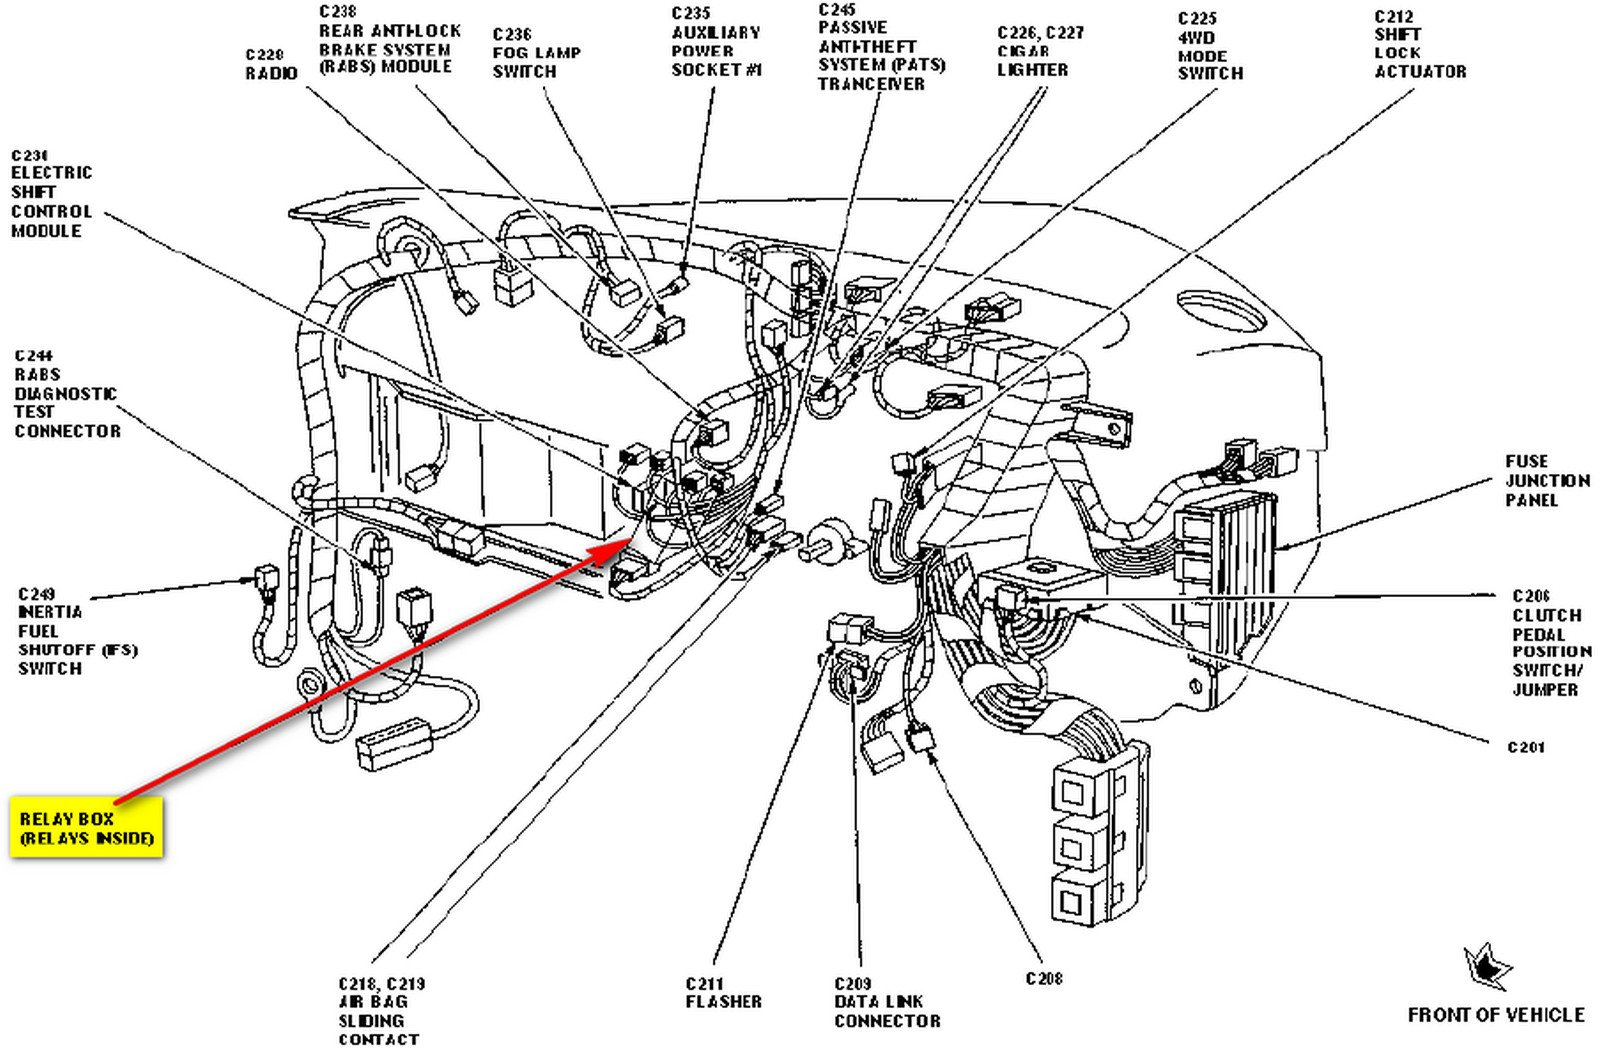 1999 Ford Ranger Relay Diagram Wiring Diagrams Scematic Electrical F 150 Where Do I Find The For Power Door Locks On A 99 Fuse Box